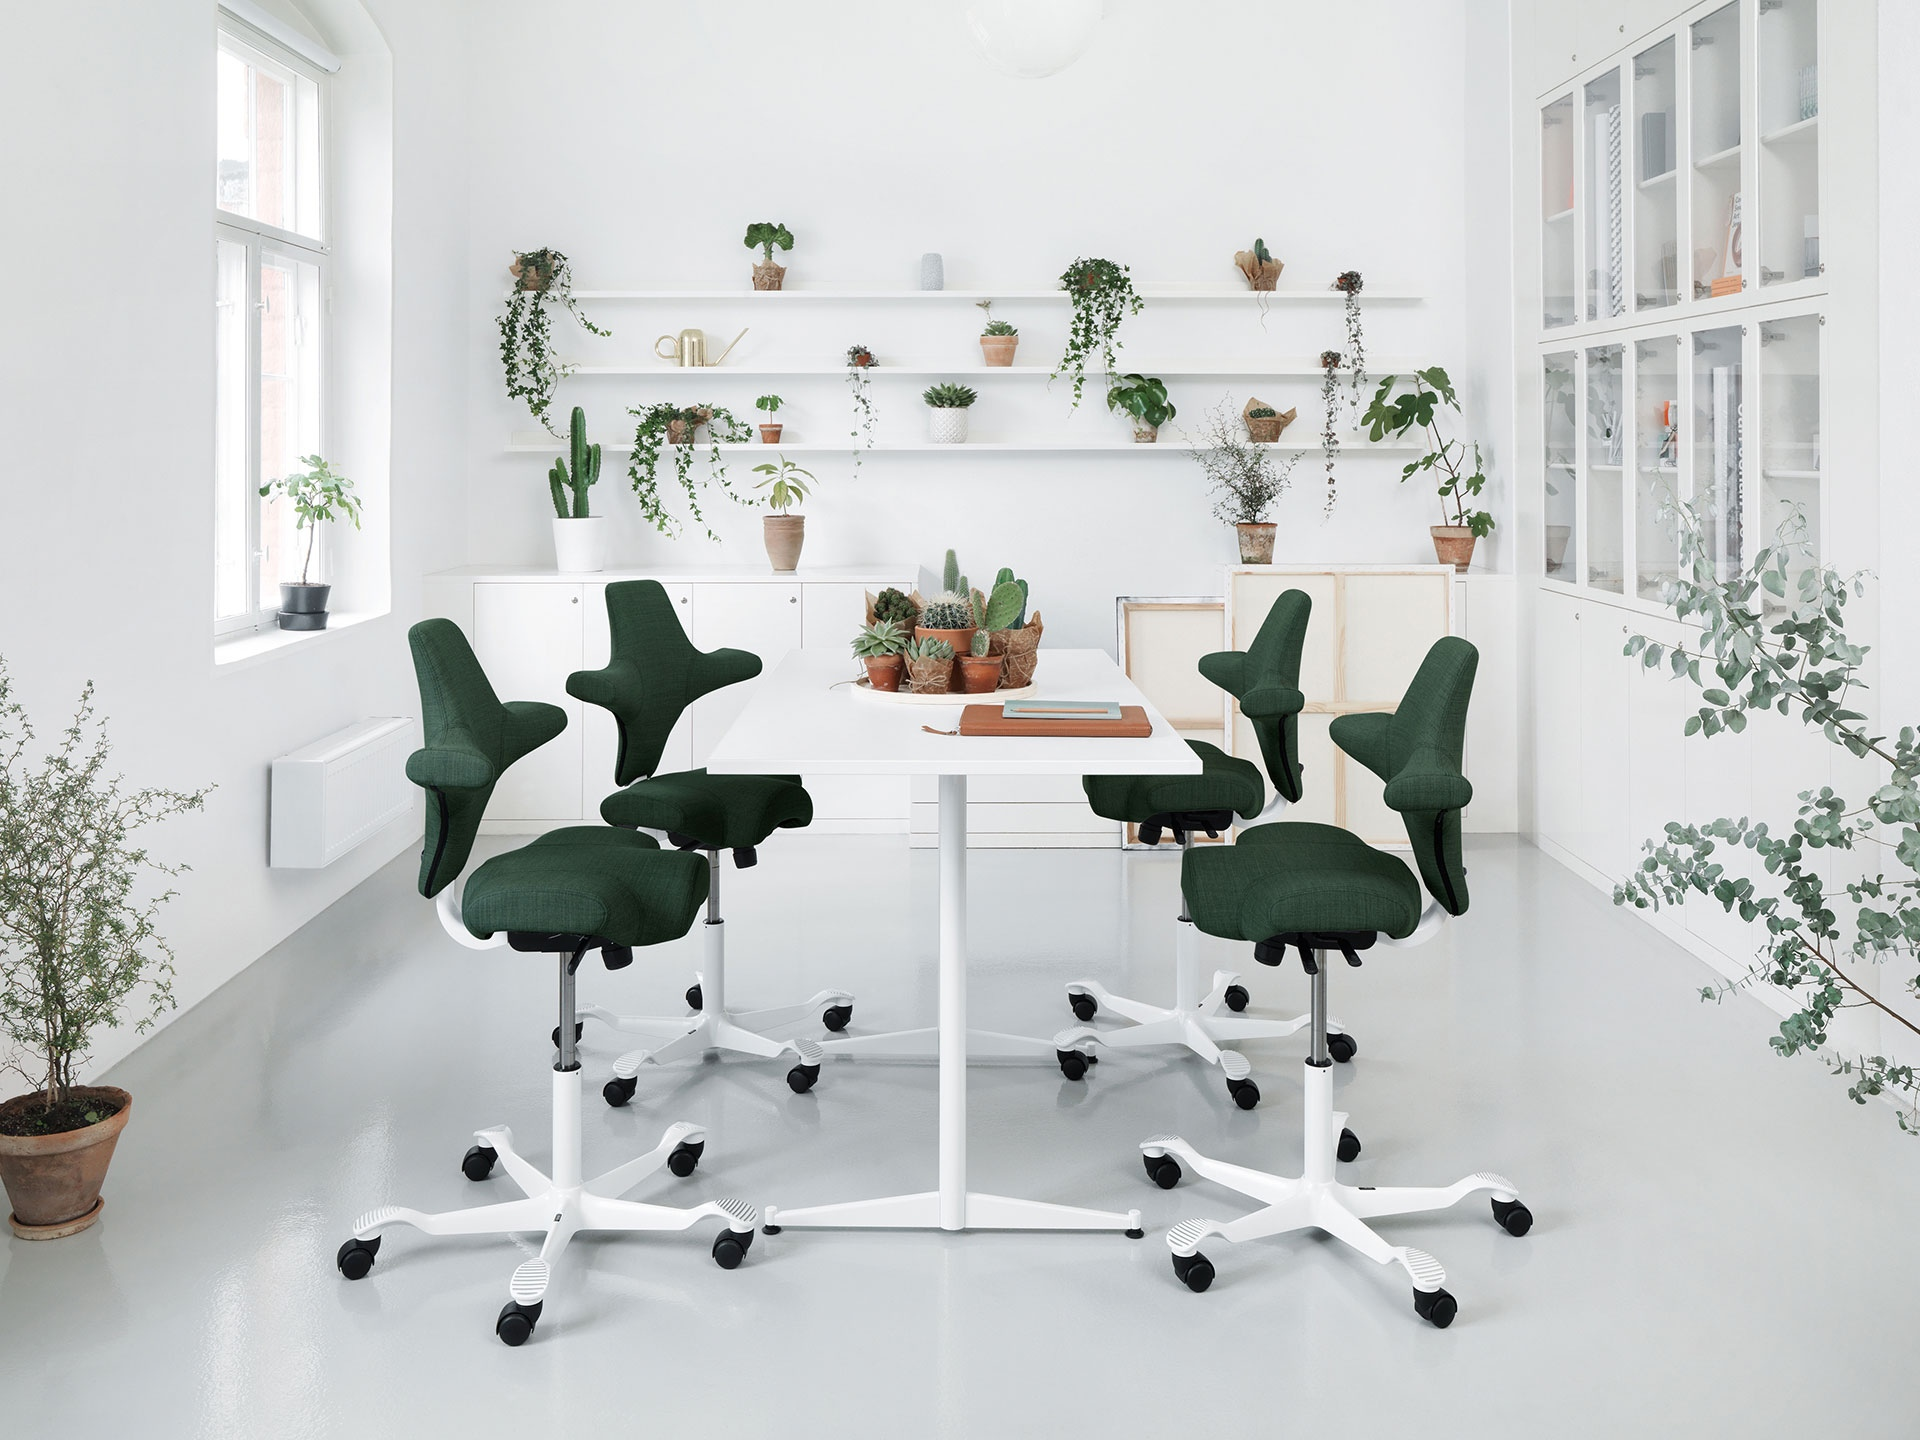 Four dark green HÅG Capisco chairs with white footbase arounf RBM Allround table in white with Cactus on the table and many plants in the white room.